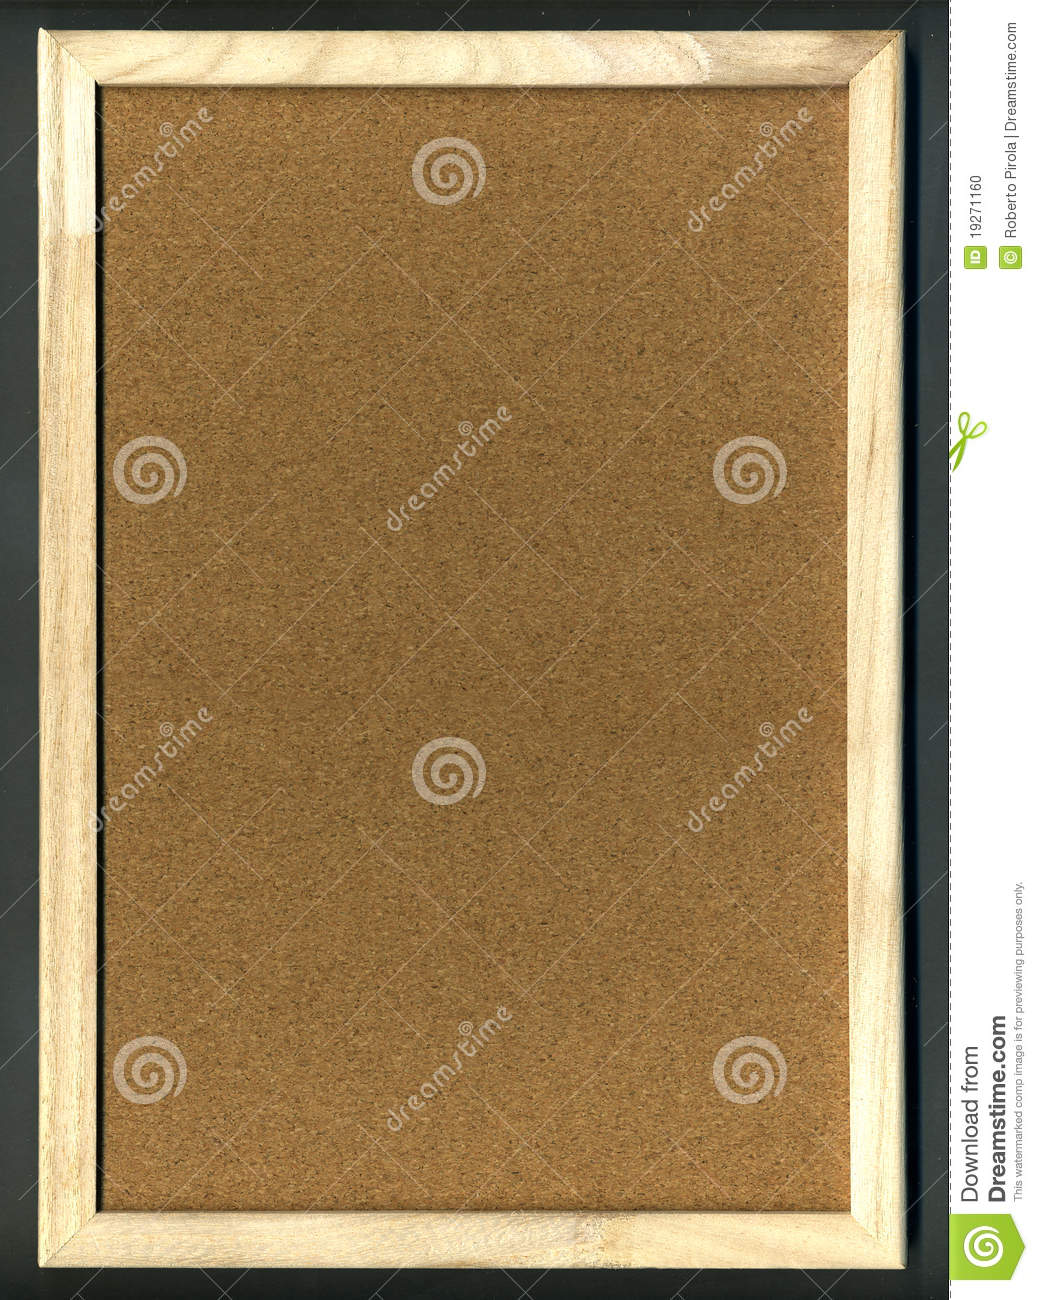 blank cork board - photo #39